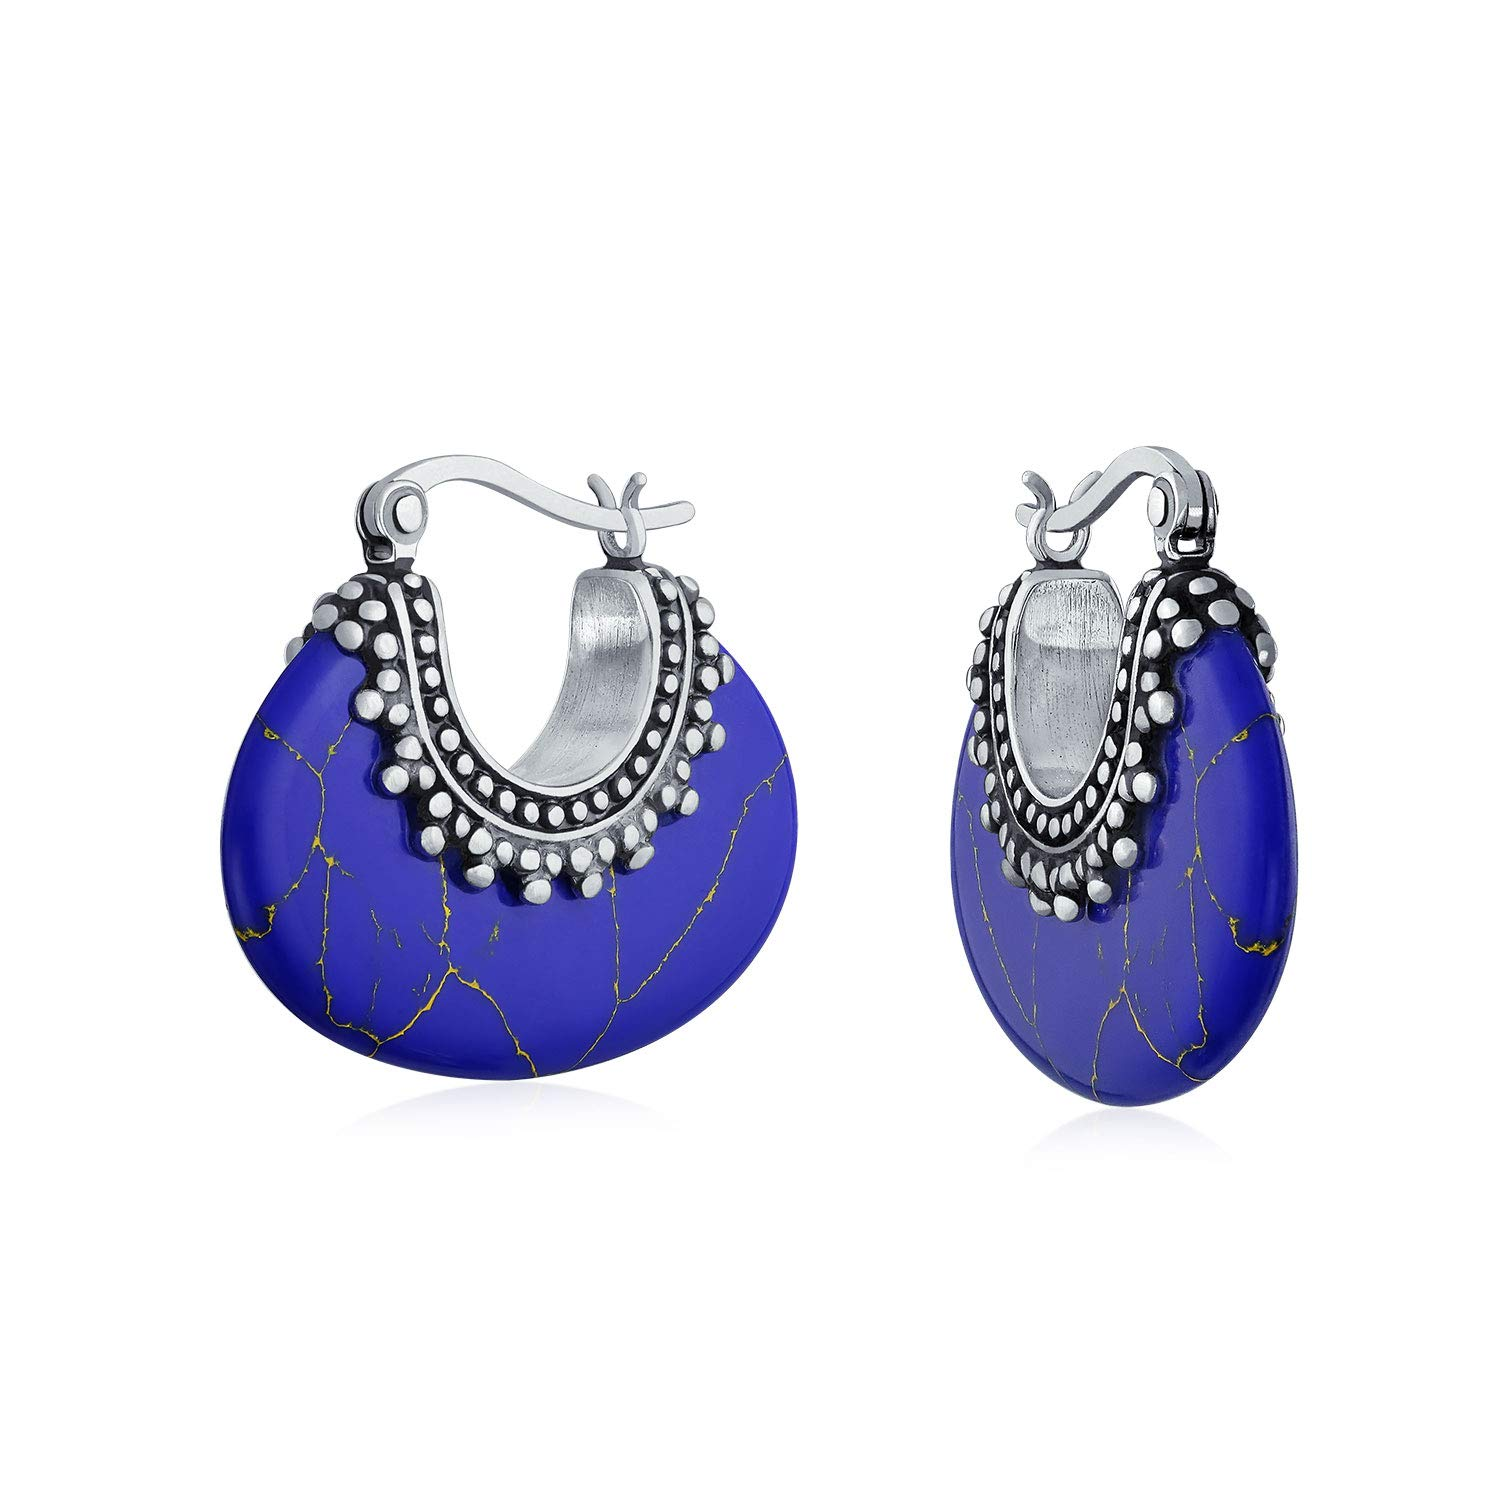 a2c690964 Amazon.com: Bali Style Tribal Blue Lapis Crescent Hoop Earrings For Women  Oxidized Caviar Bead 925 Sterling Silver: Jewelry